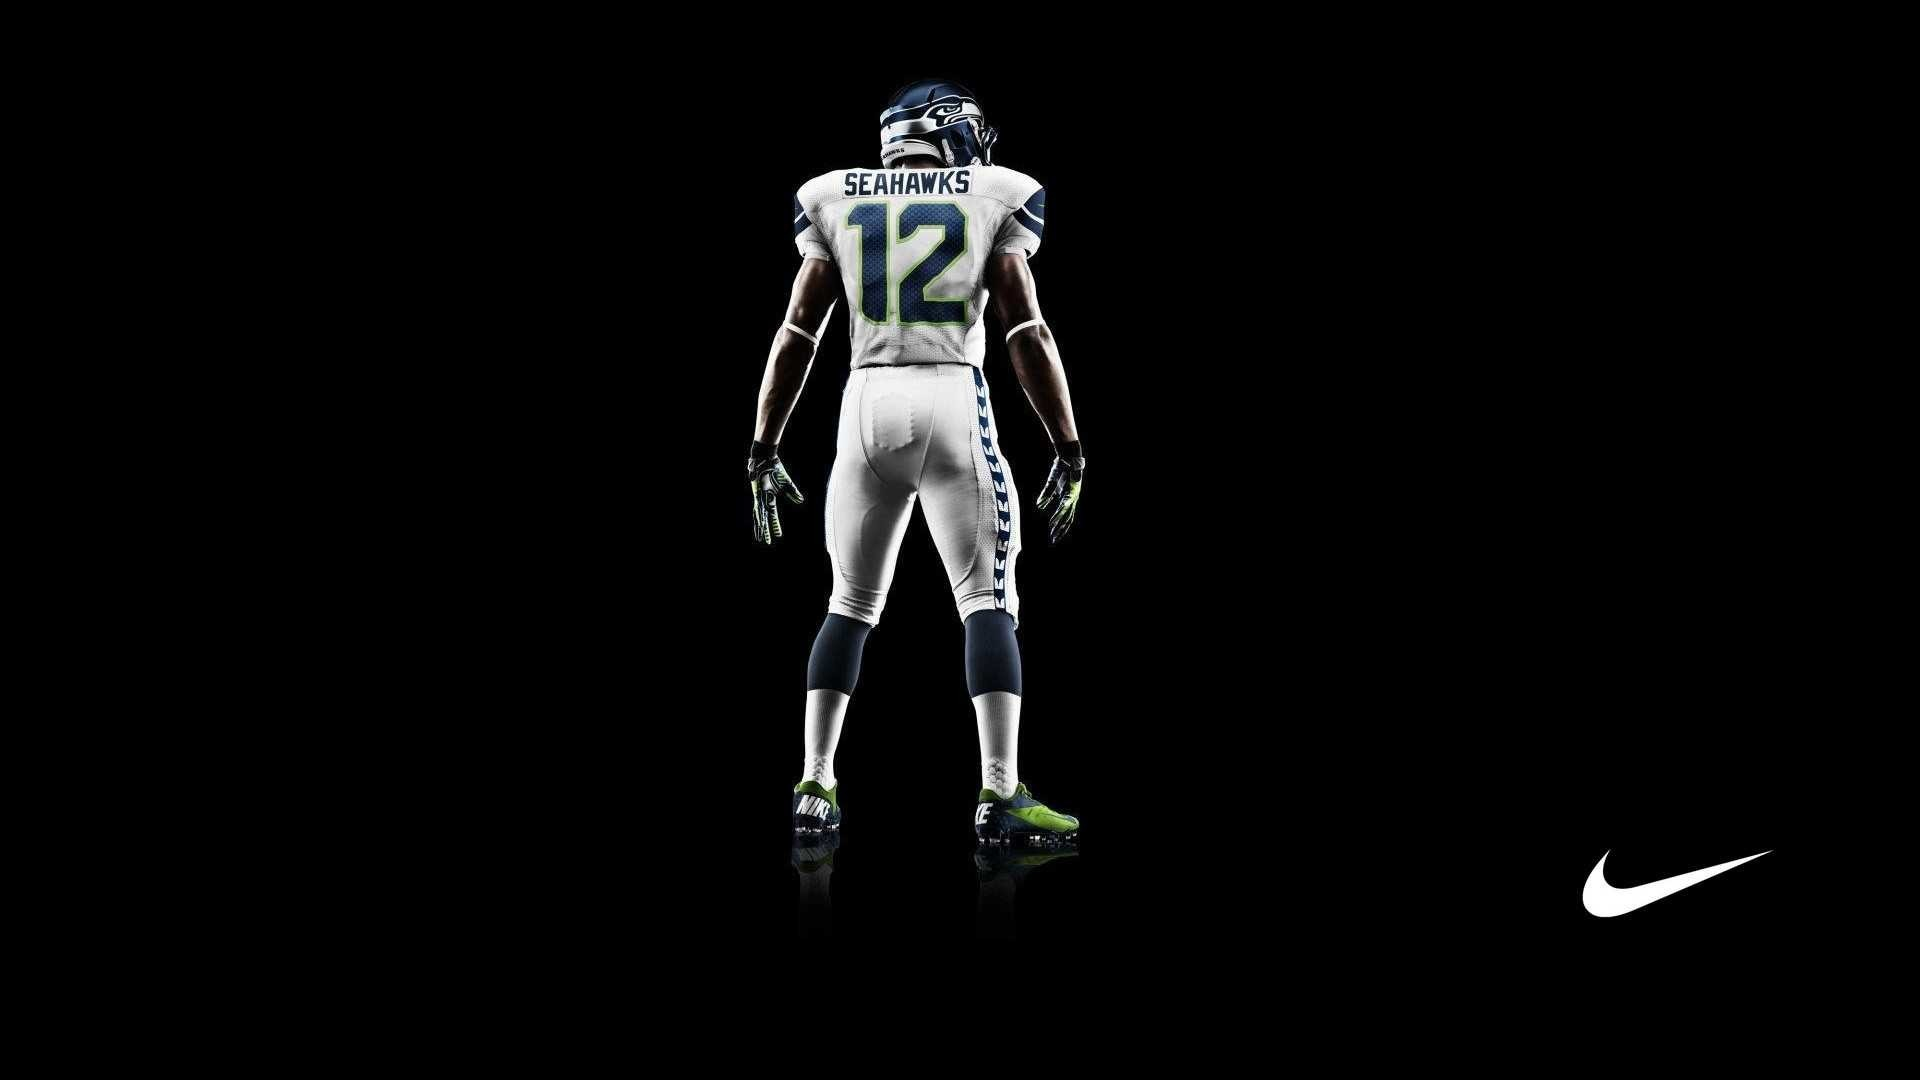 1920x1080 2500x1406 Seahawks Wallpapers – Top 423 Seahawks Wallpapers for PC & Mac,  Tablet, Laptop, Mobile